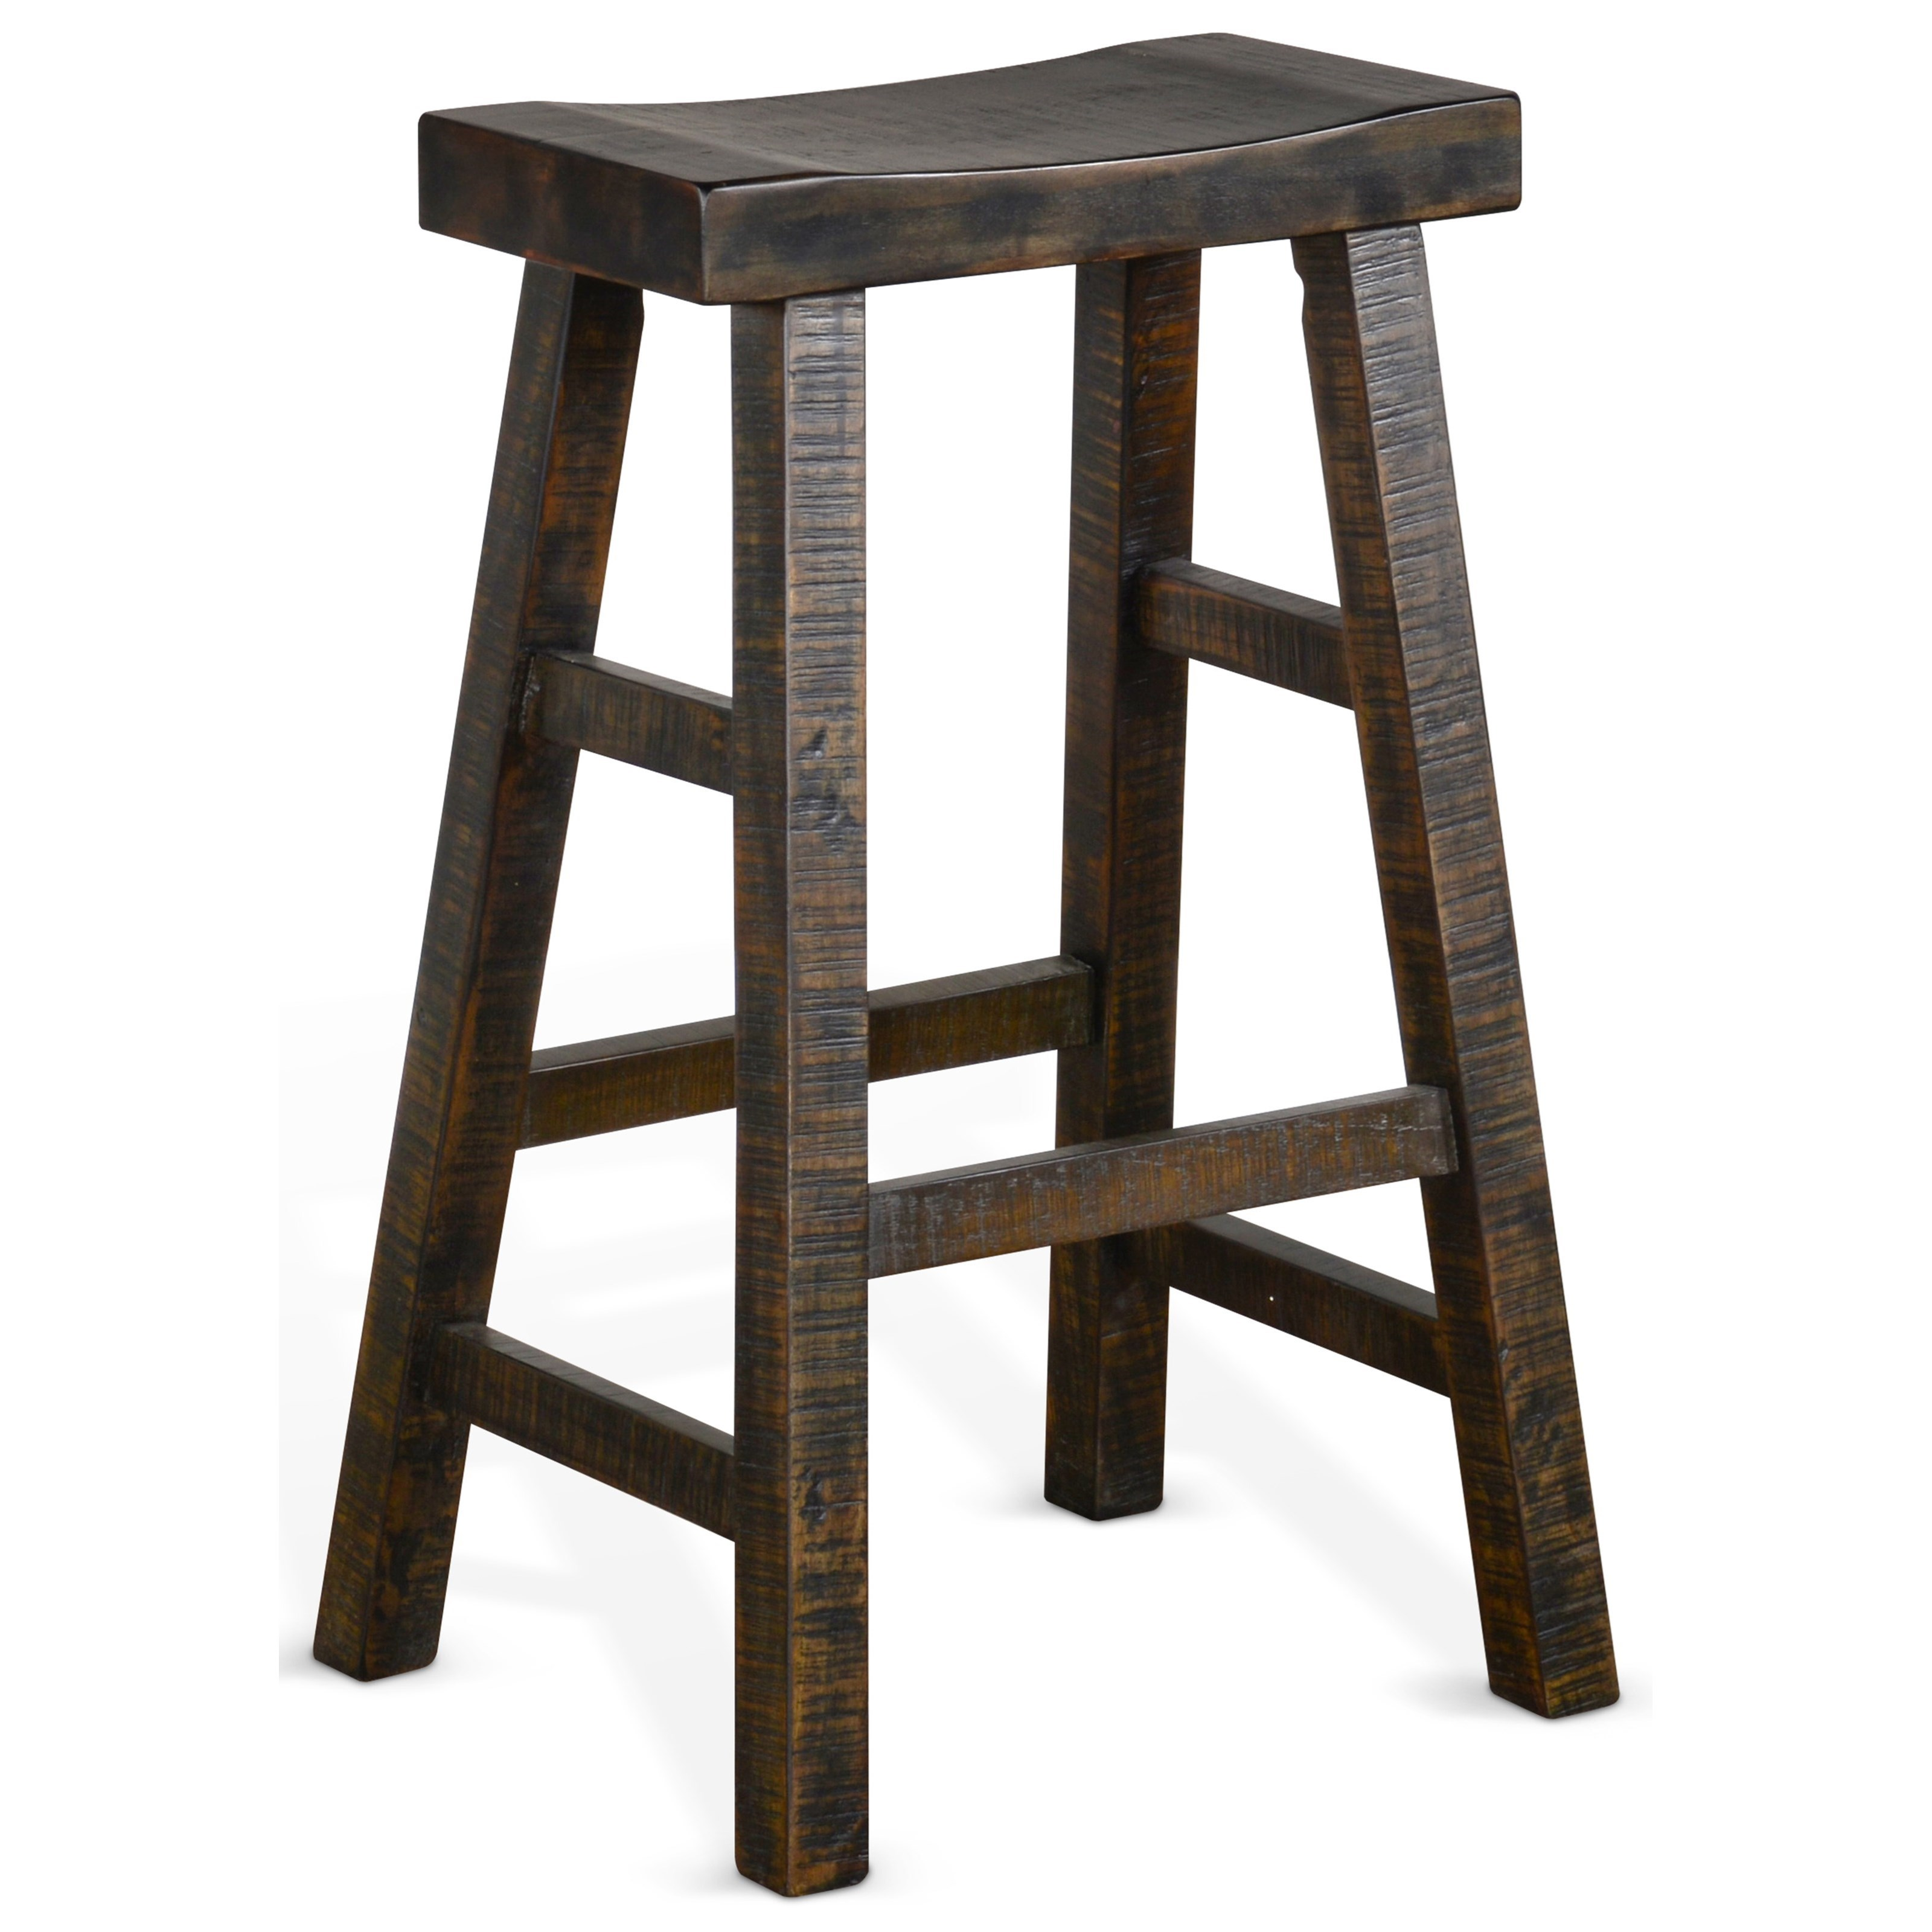 "1768 30""H Saddle Seat Stool, Wood Seat by Sunny Designs at Home Furnishings Direct"